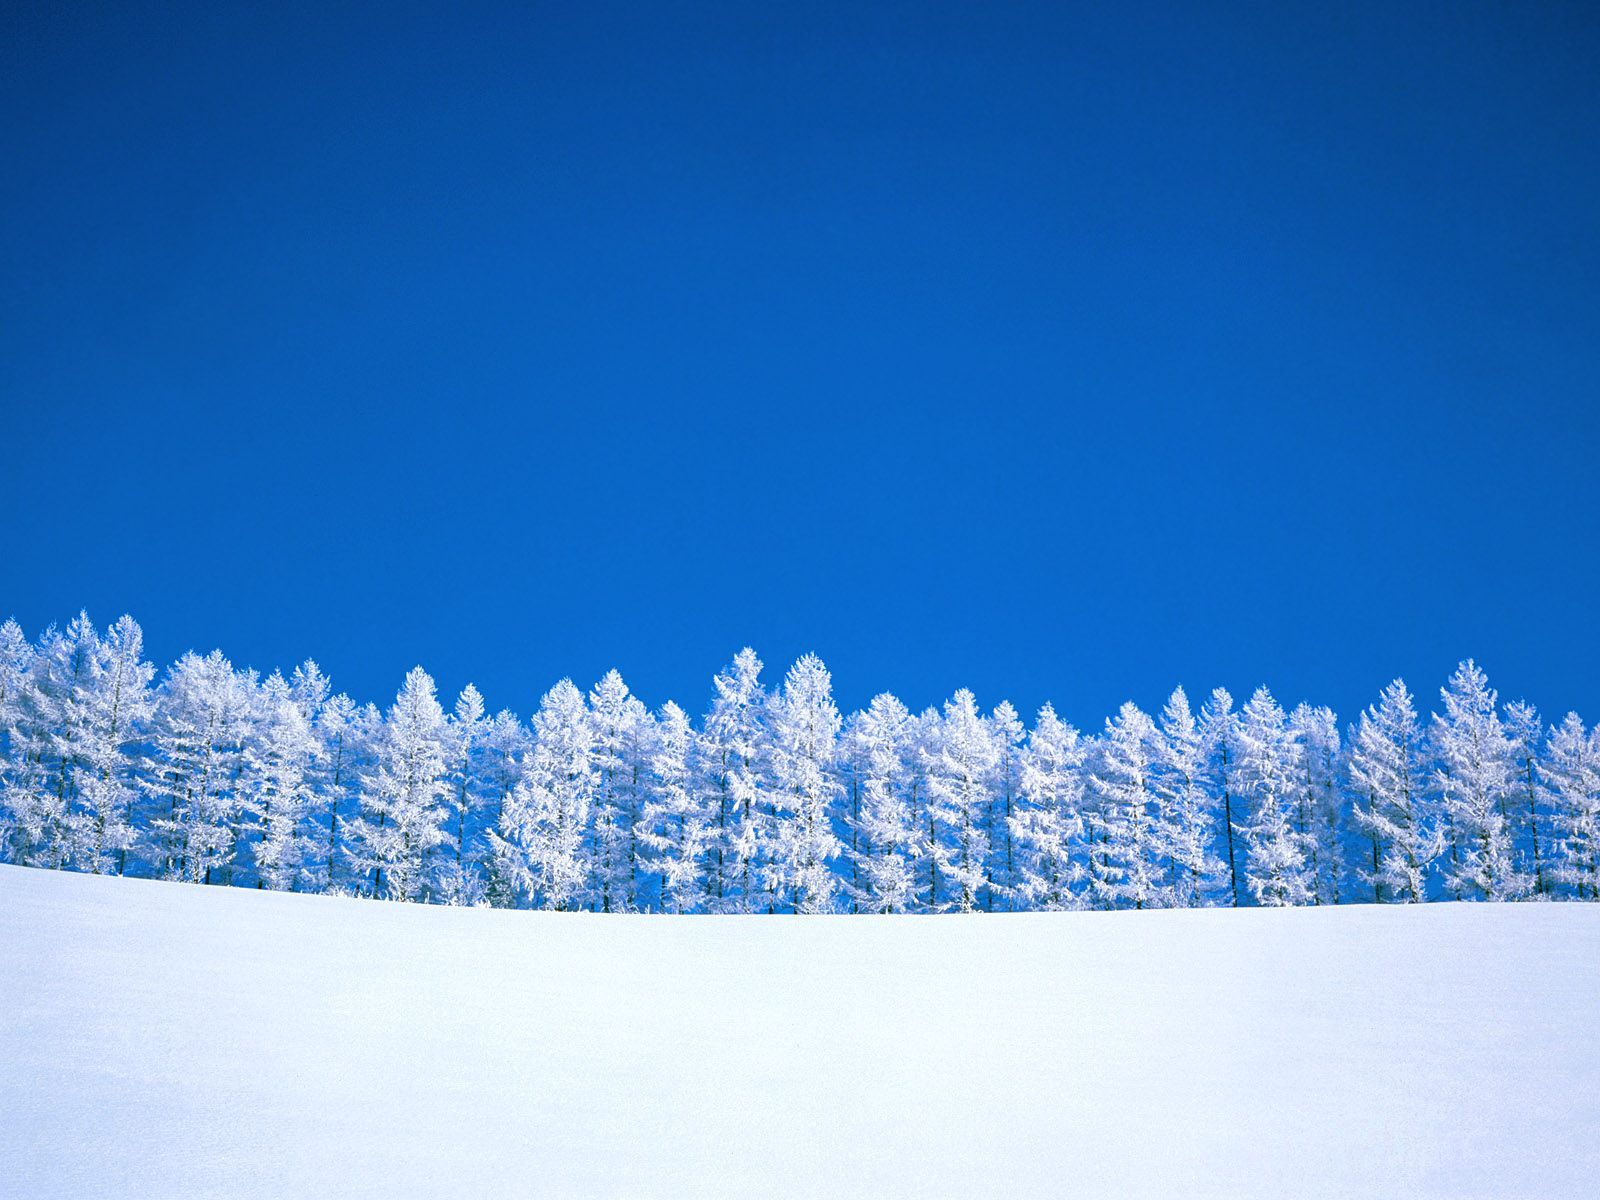 Beautiful Winter SnowFull HD Nature Background Wallpaper for Laptop 1600x1200